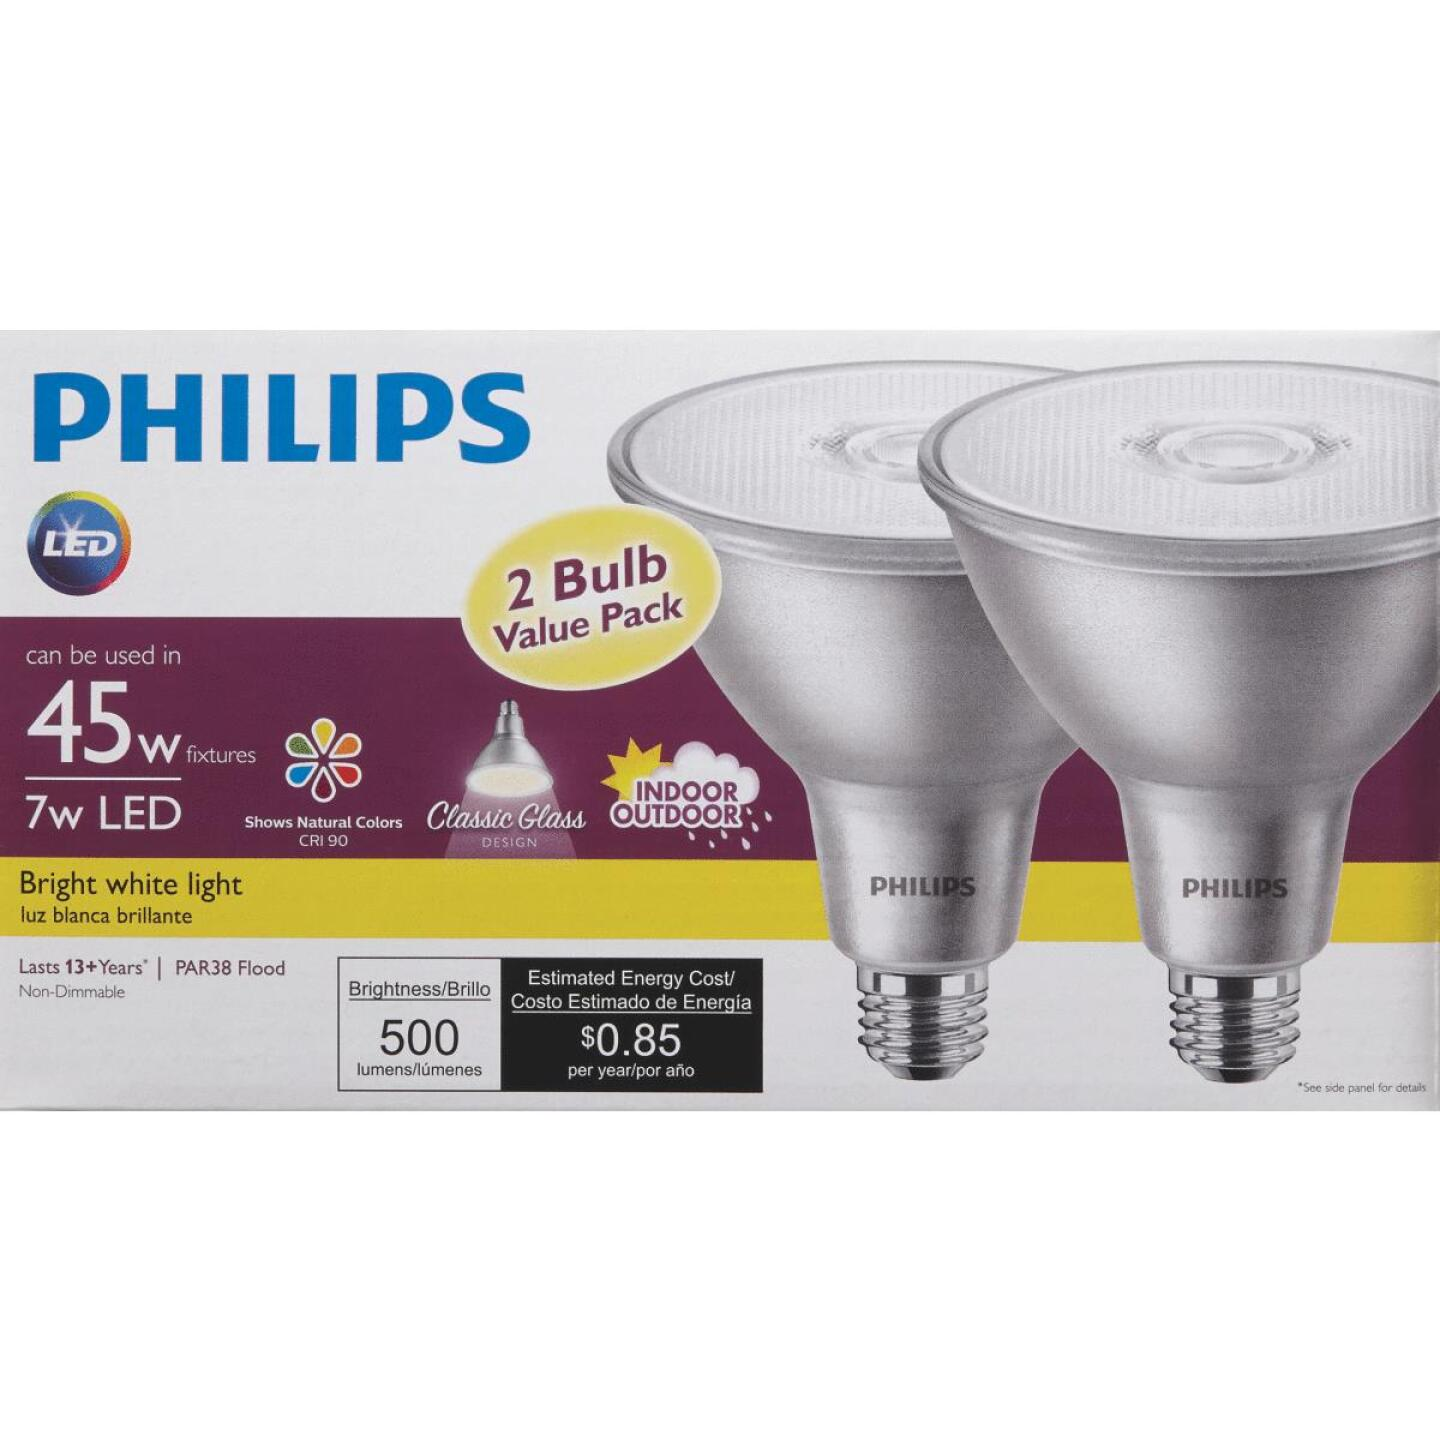 Philips 45W Equivalent Bright White PAR38 Medium Indoor/Outdoor LED Floodlight Light Bulb (2-Pack) Image 2